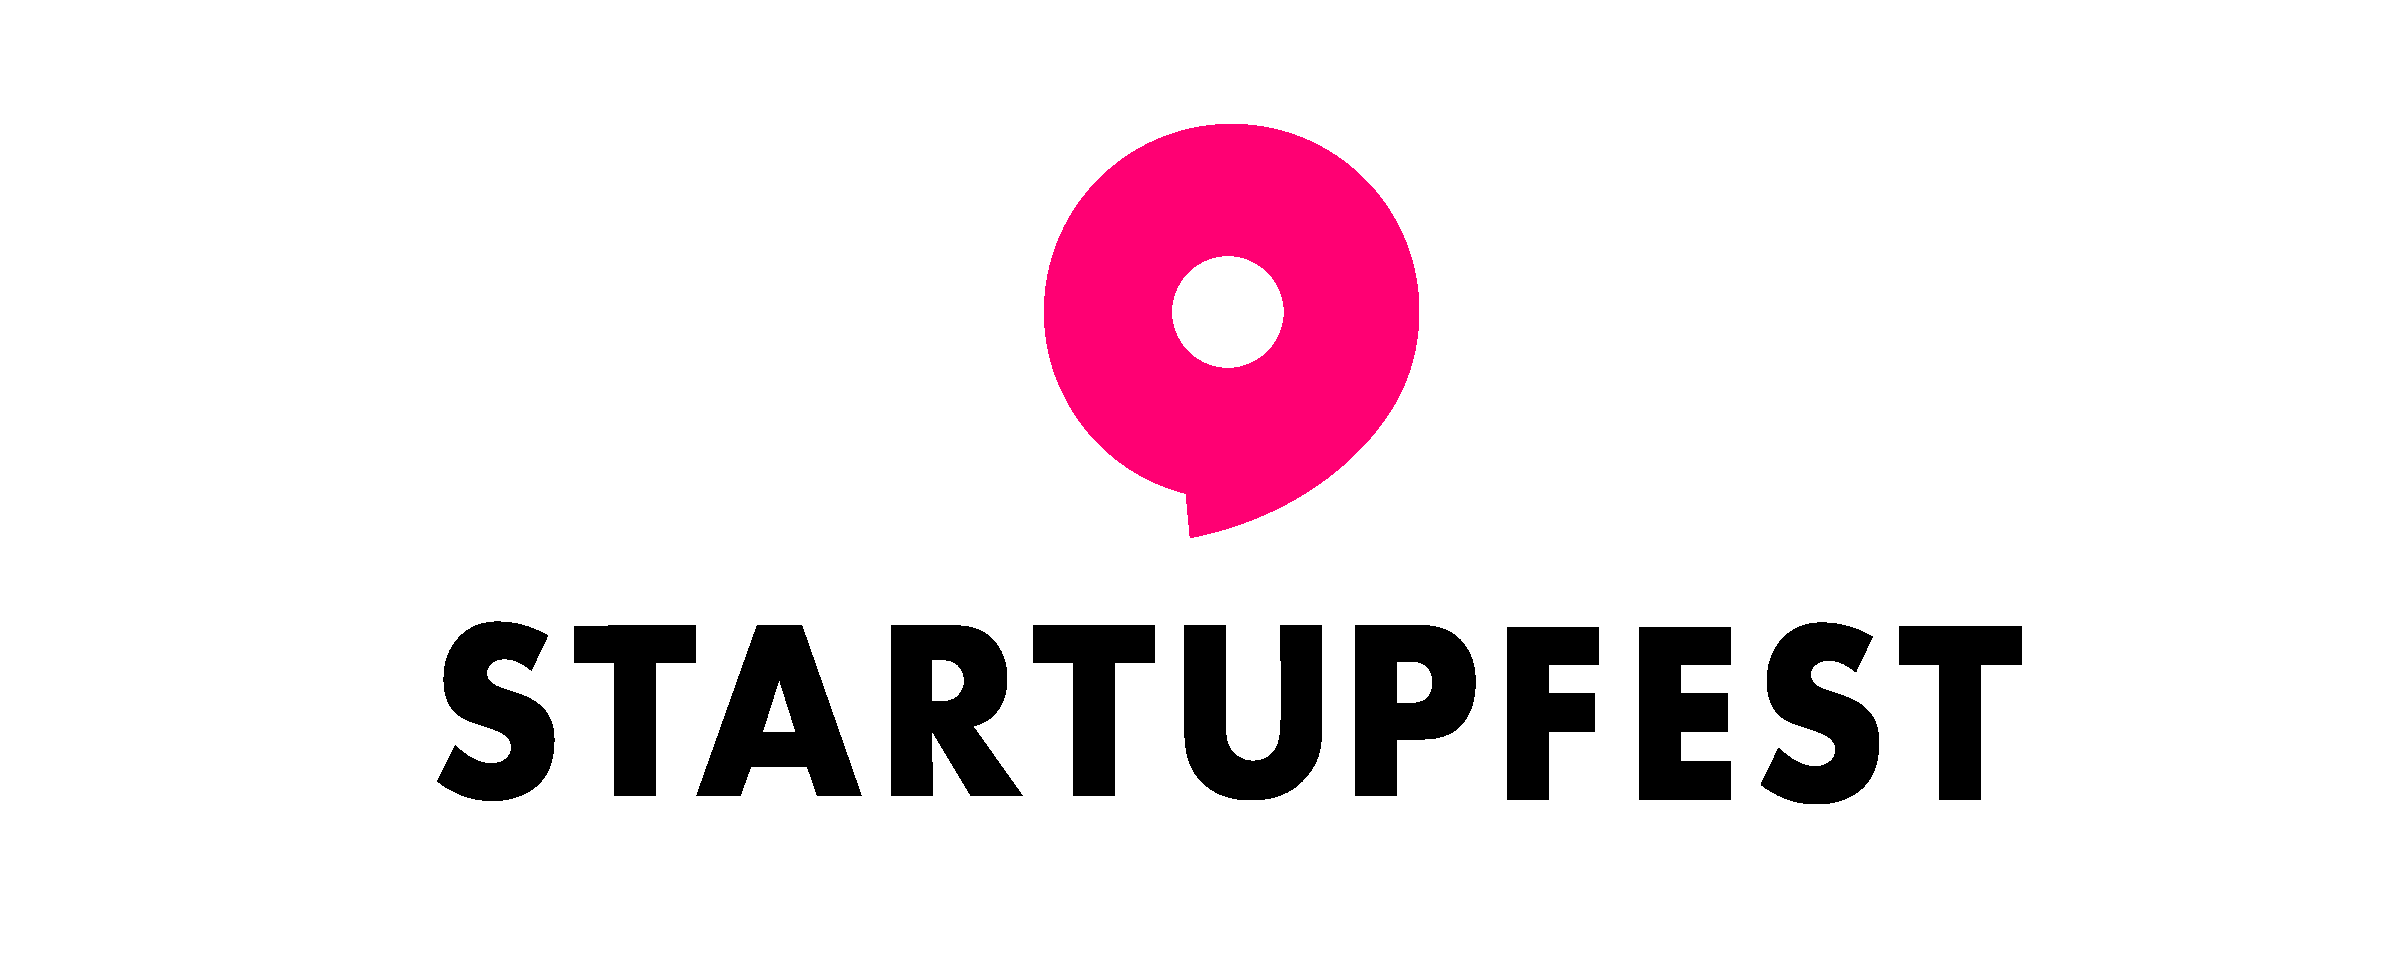 Startupfest Montreal July 9 to 12, 2019